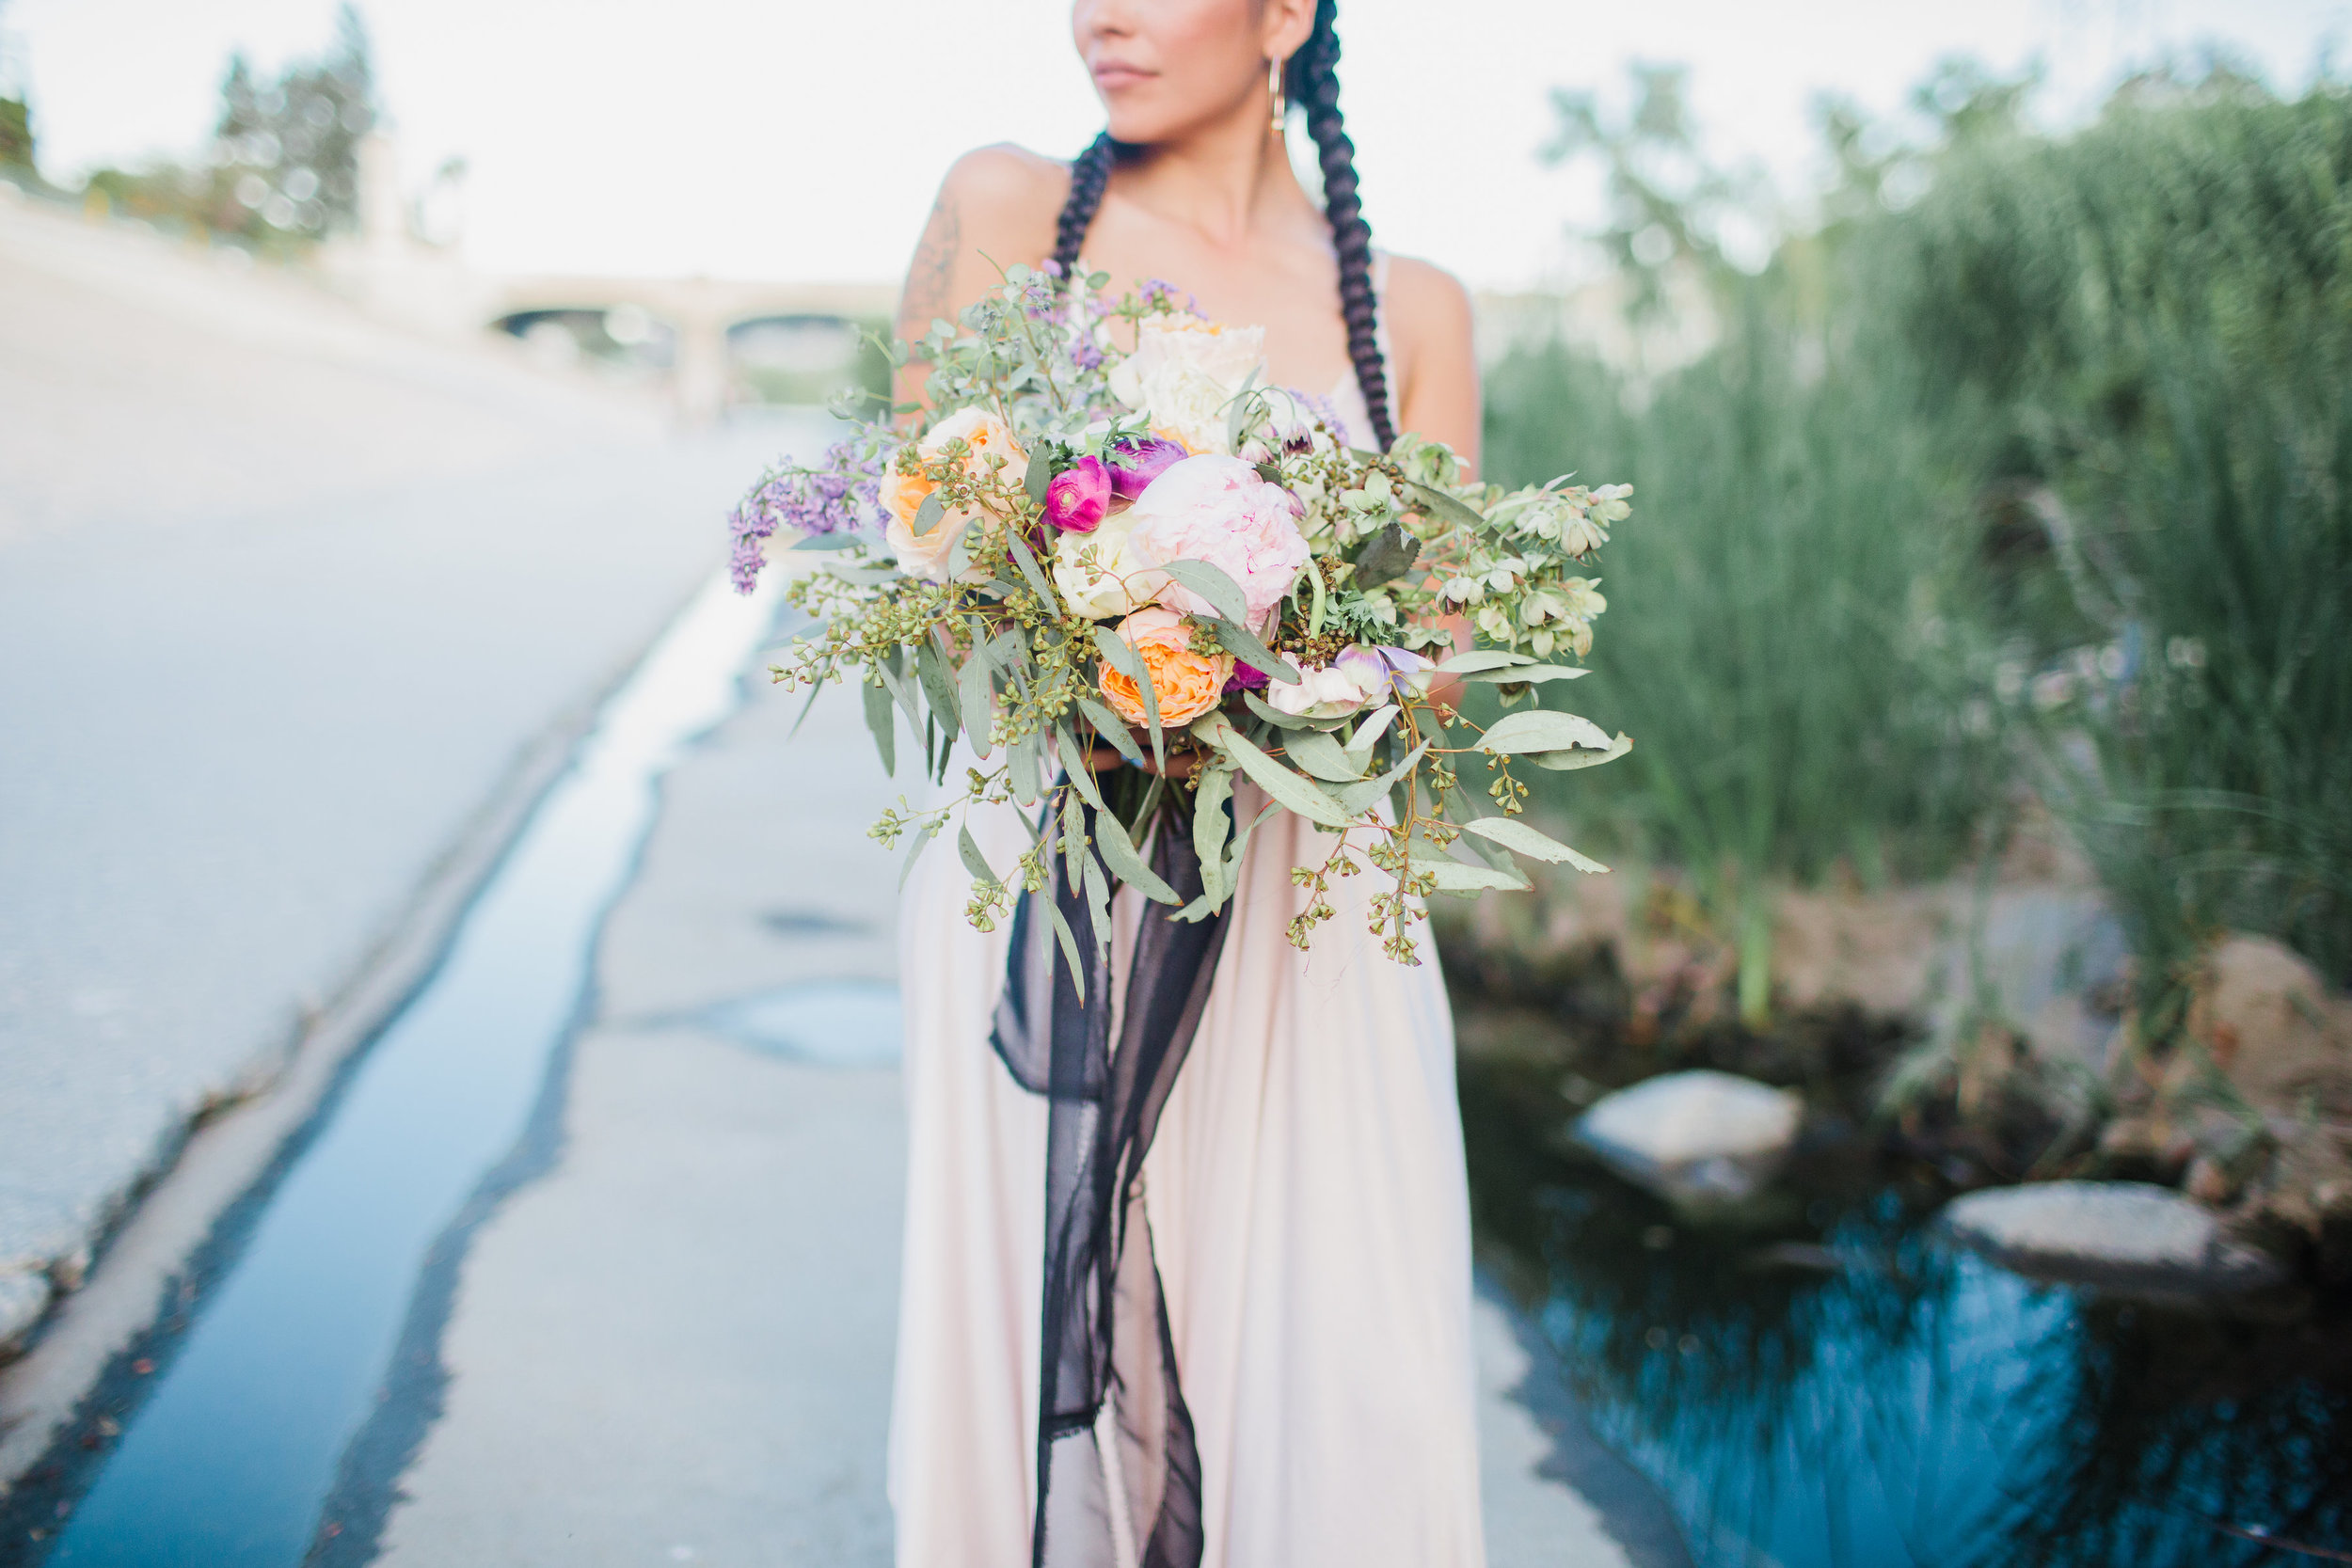 latina bride at the la river with purple bouquet #lrqcfloral #gaywedding